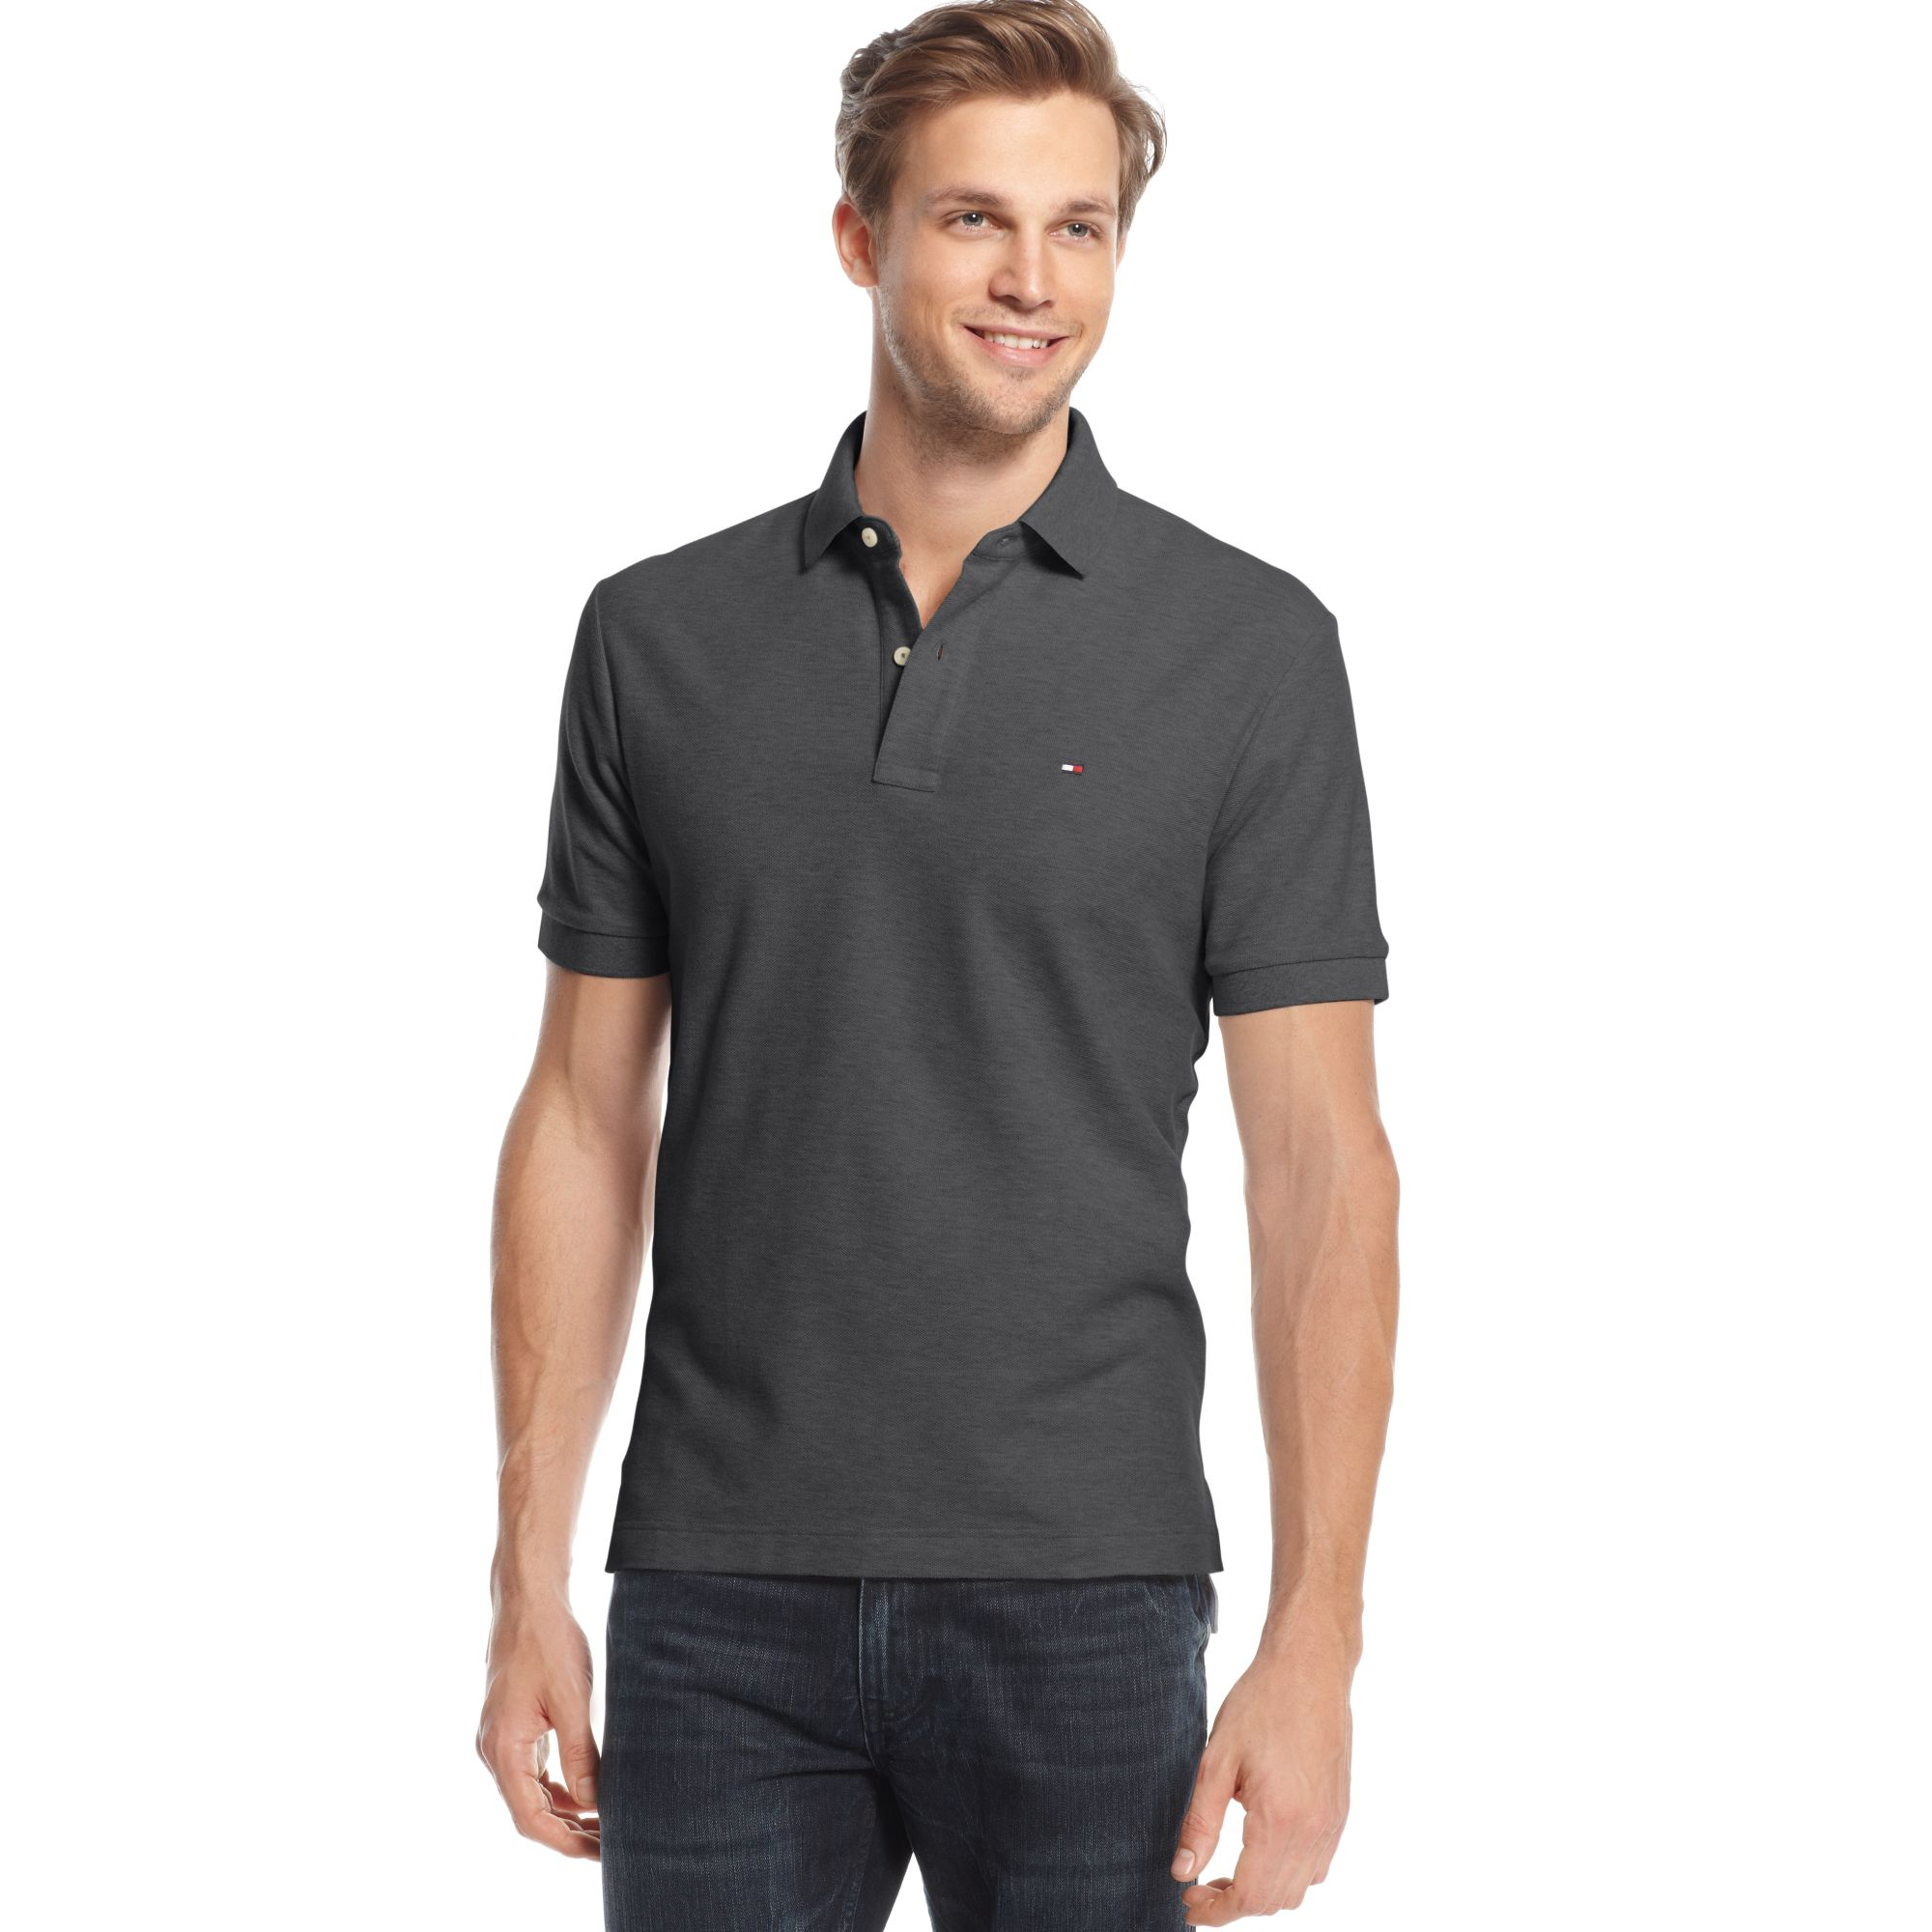 tommy hilfiger classic ivy polo shirt in gray for men medium grey lyst. Black Bedroom Furniture Sets. Home Design Ideas